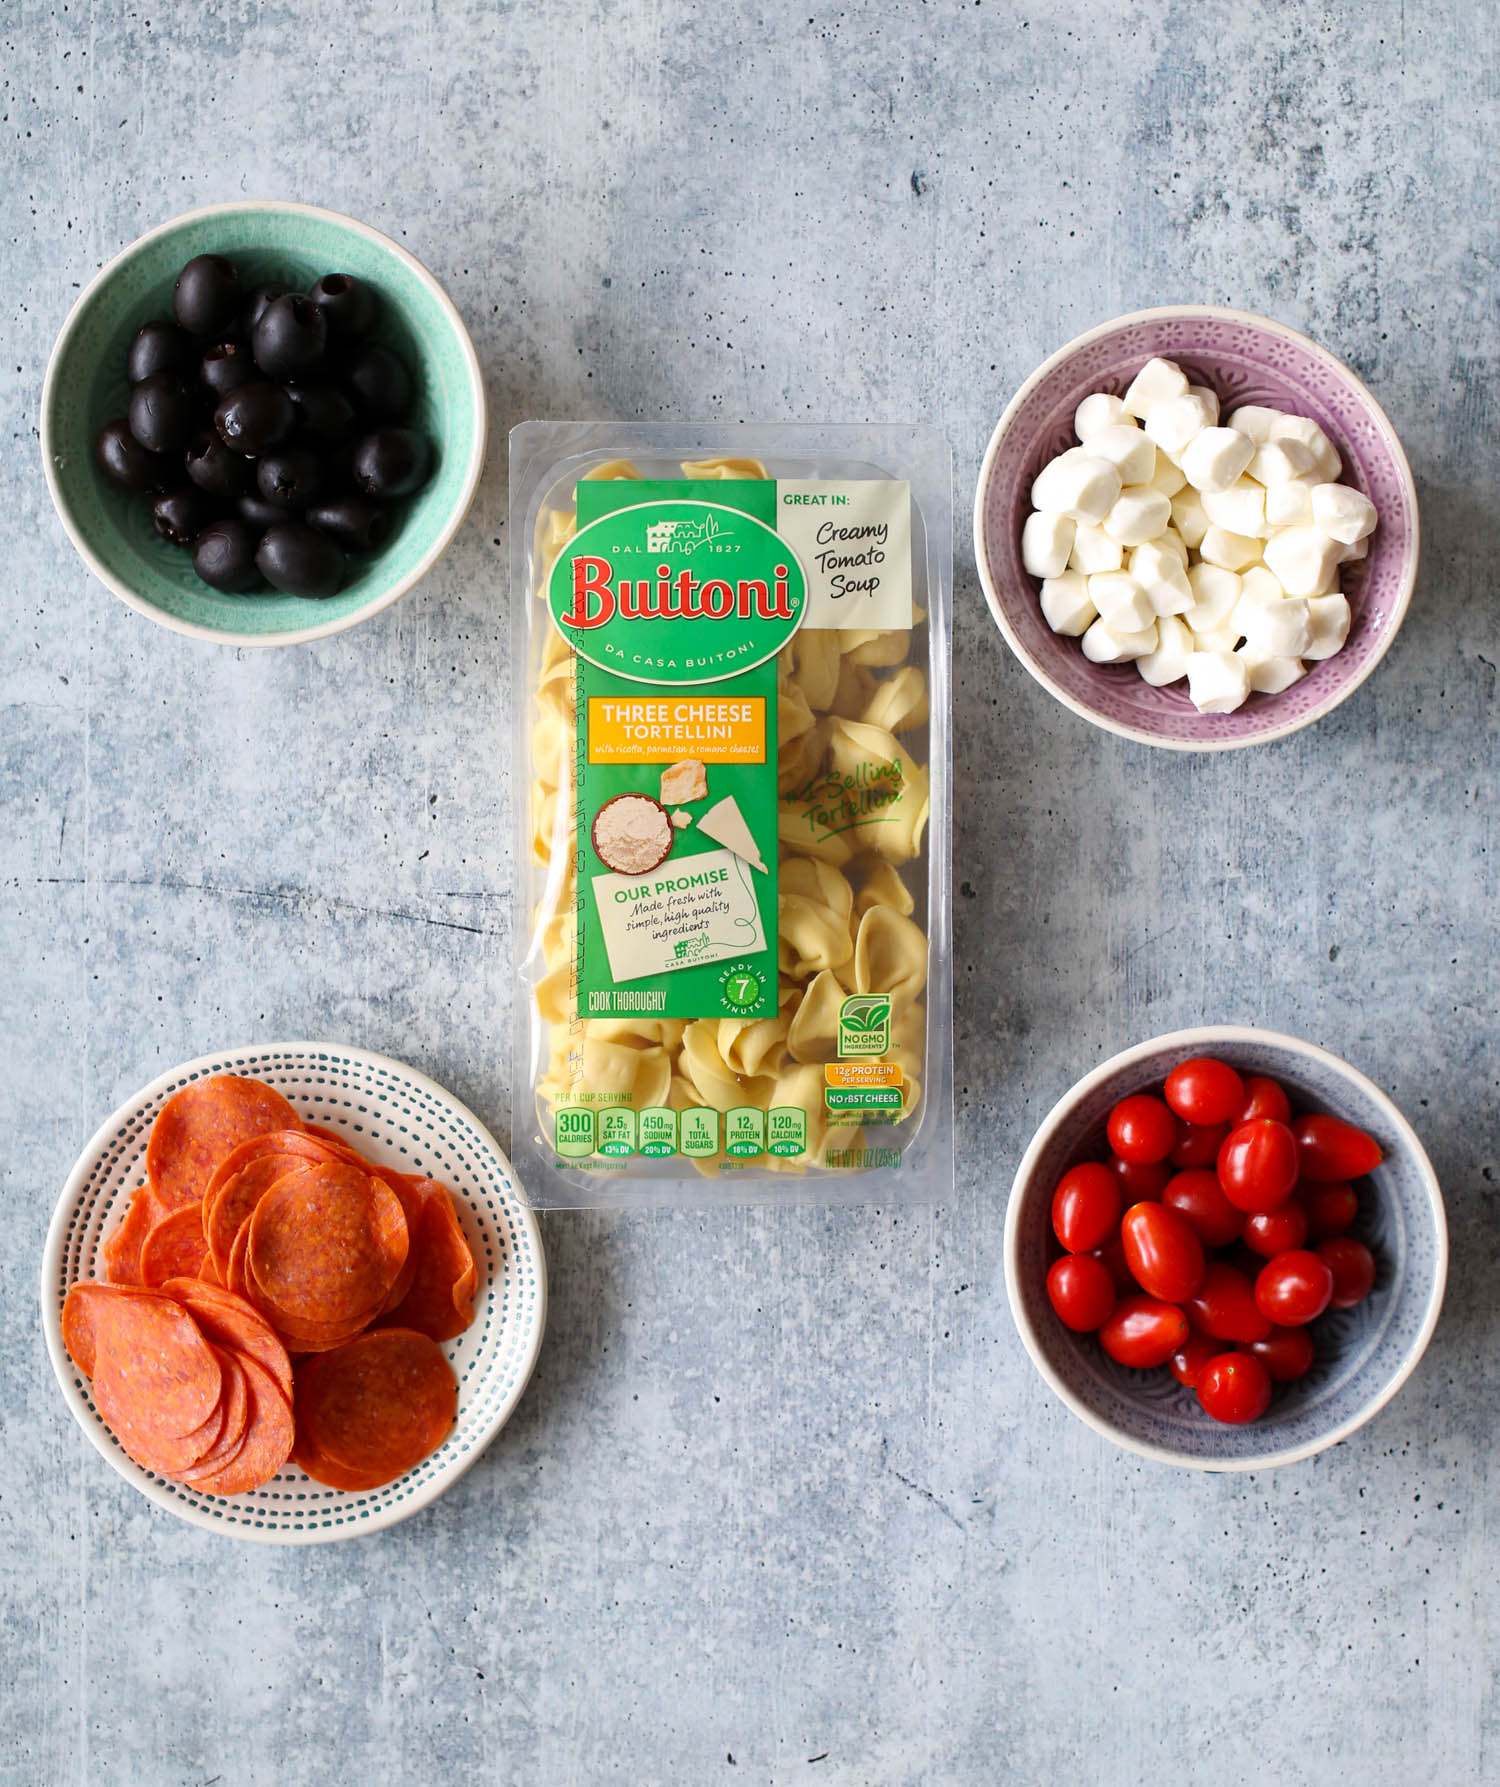 Ingredients for Italian Tortellini Skewers with Pesto Drizzle